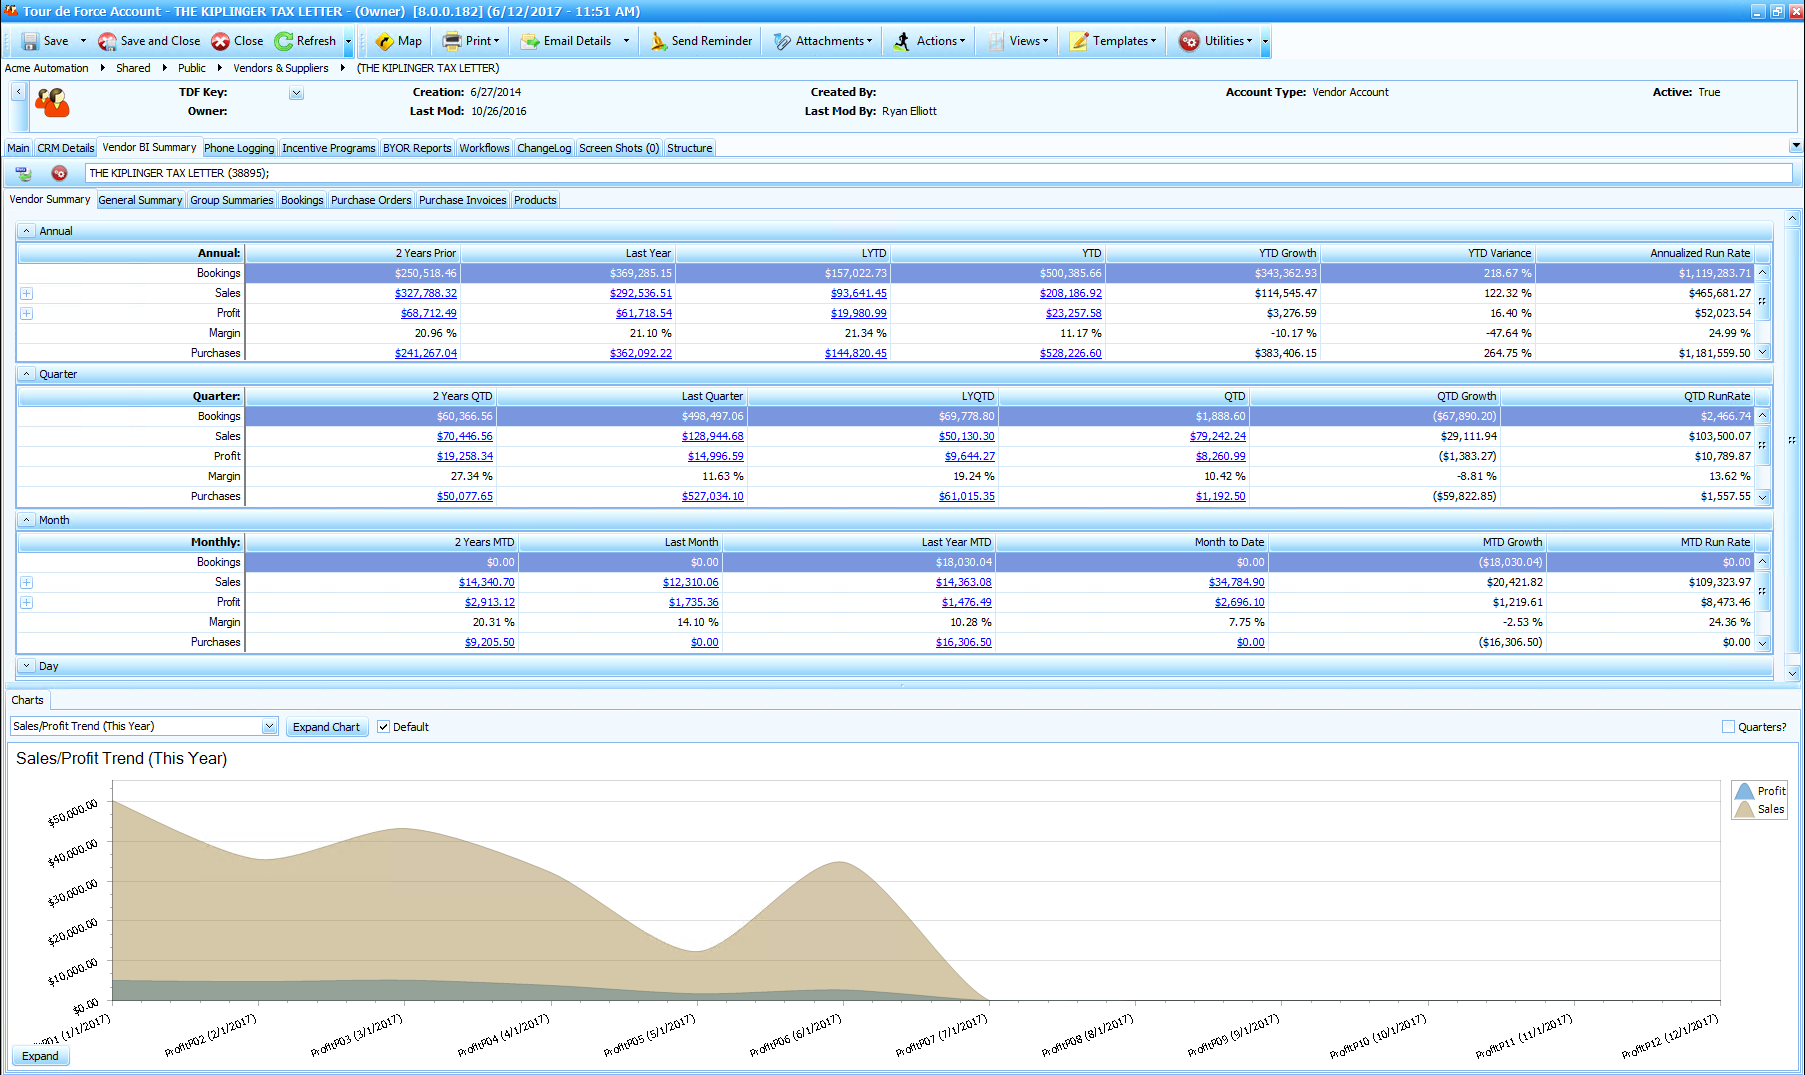 Tour de Force CRM Demo - BI+-+Vendor+Summary.png